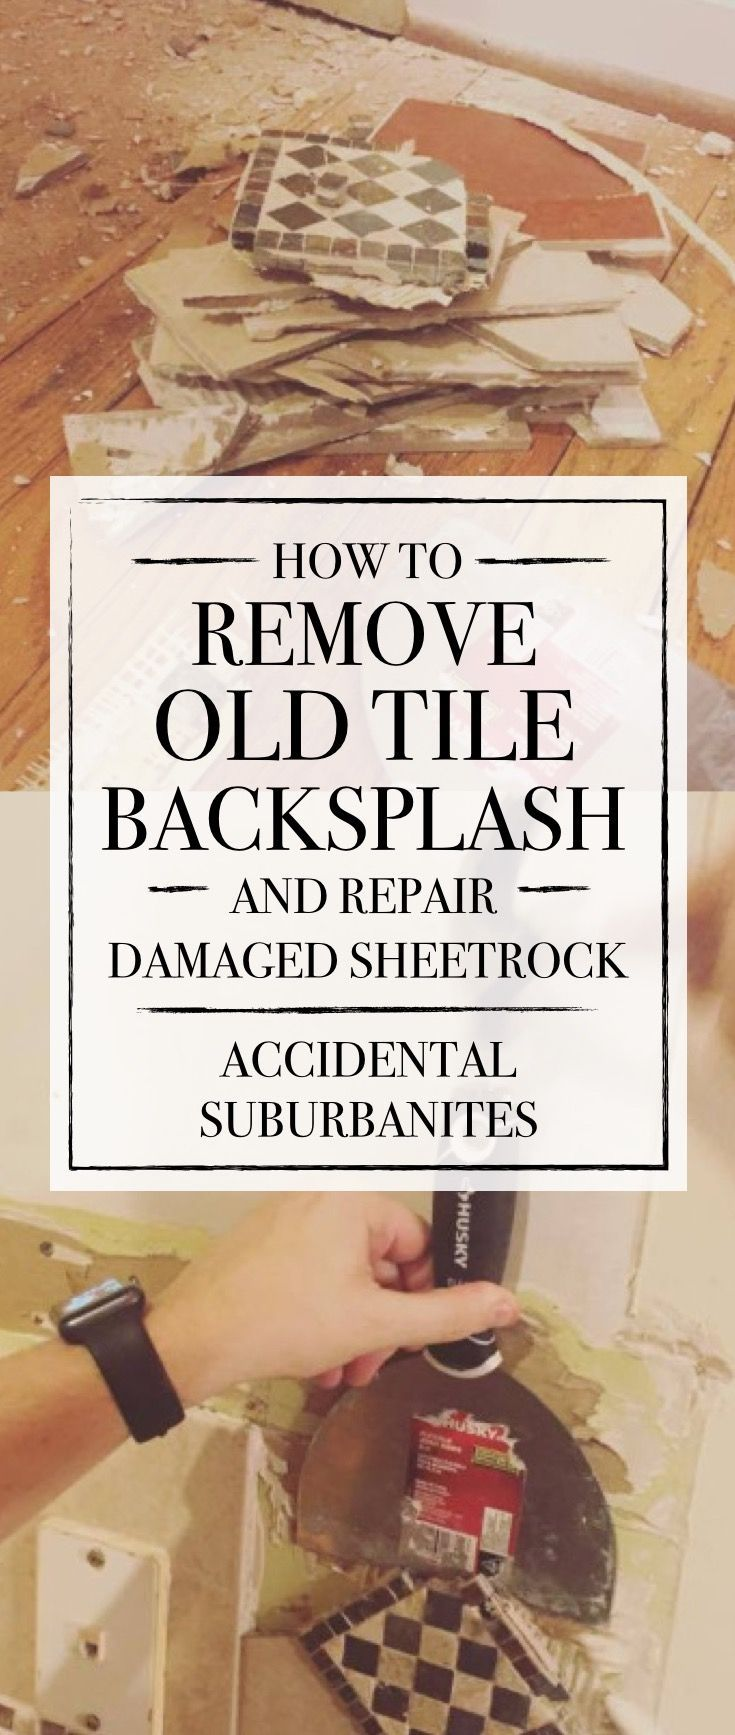 how to remove backsplash from drywall